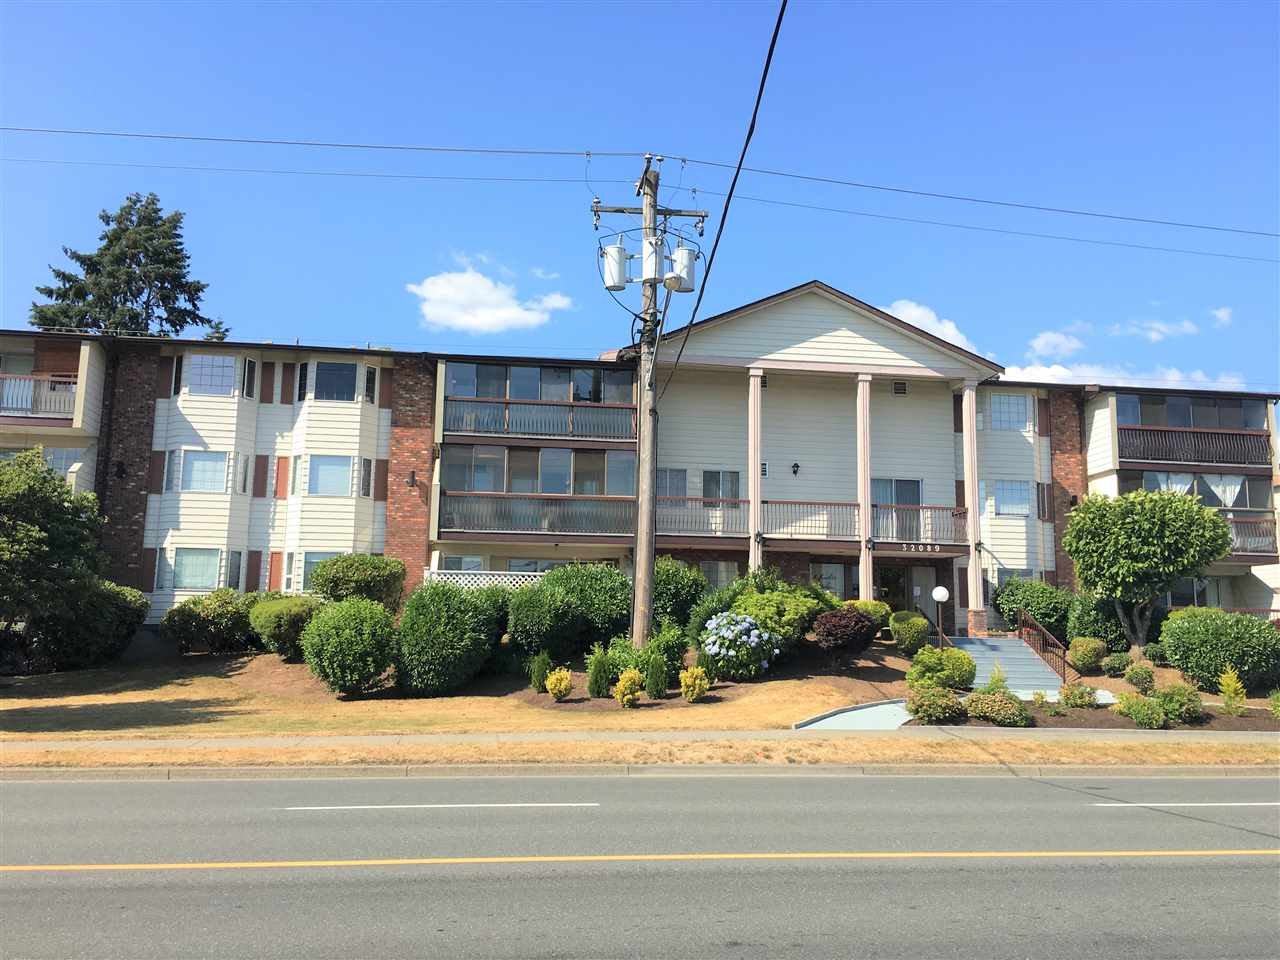 Condo Apartment at 201 32089 OLD YALE ROAD, Unit 201, Abbotsford, British Columbia. Image 1